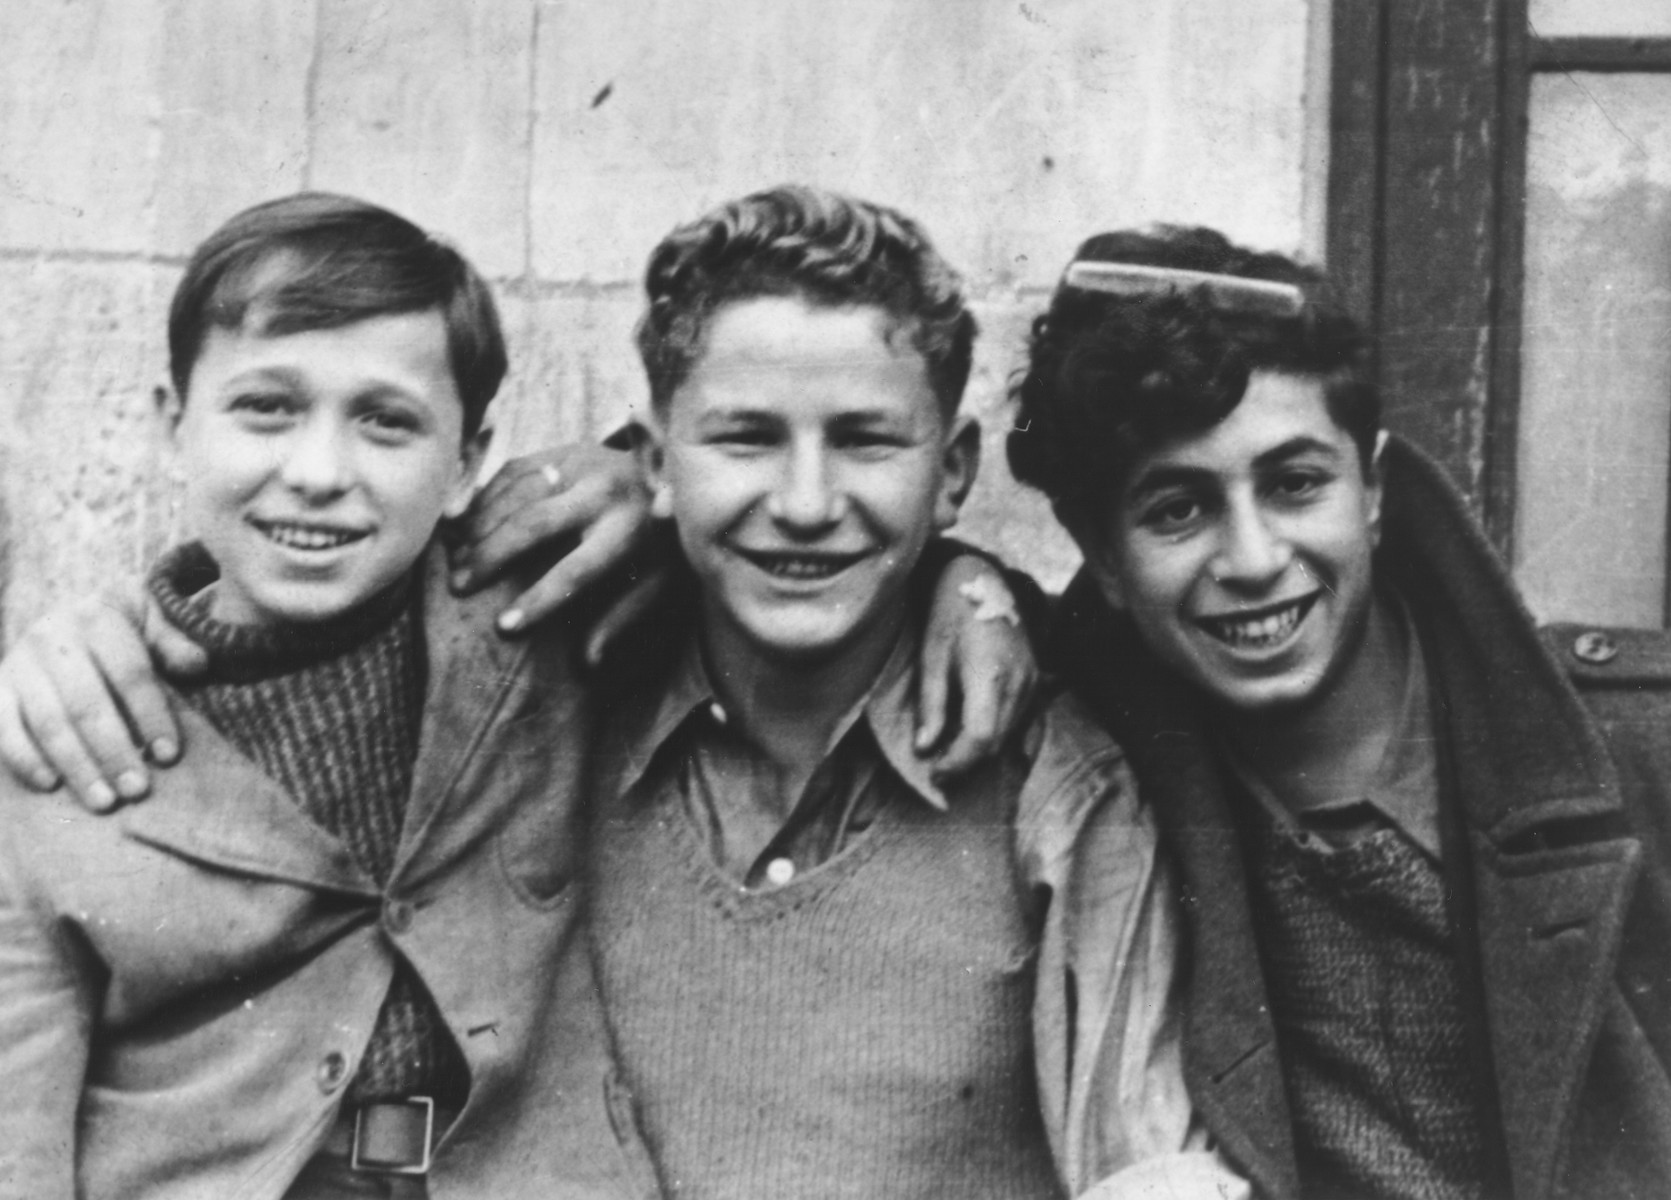 Portrait of three Jewish DP youth at the OSE (Oeuvre de Secours aux Enfants) children's home in Champigny-sur-Marne.   Pictured from left to right are: Leon Lewkowicz, Johny Weisz and Ignatz Spett.